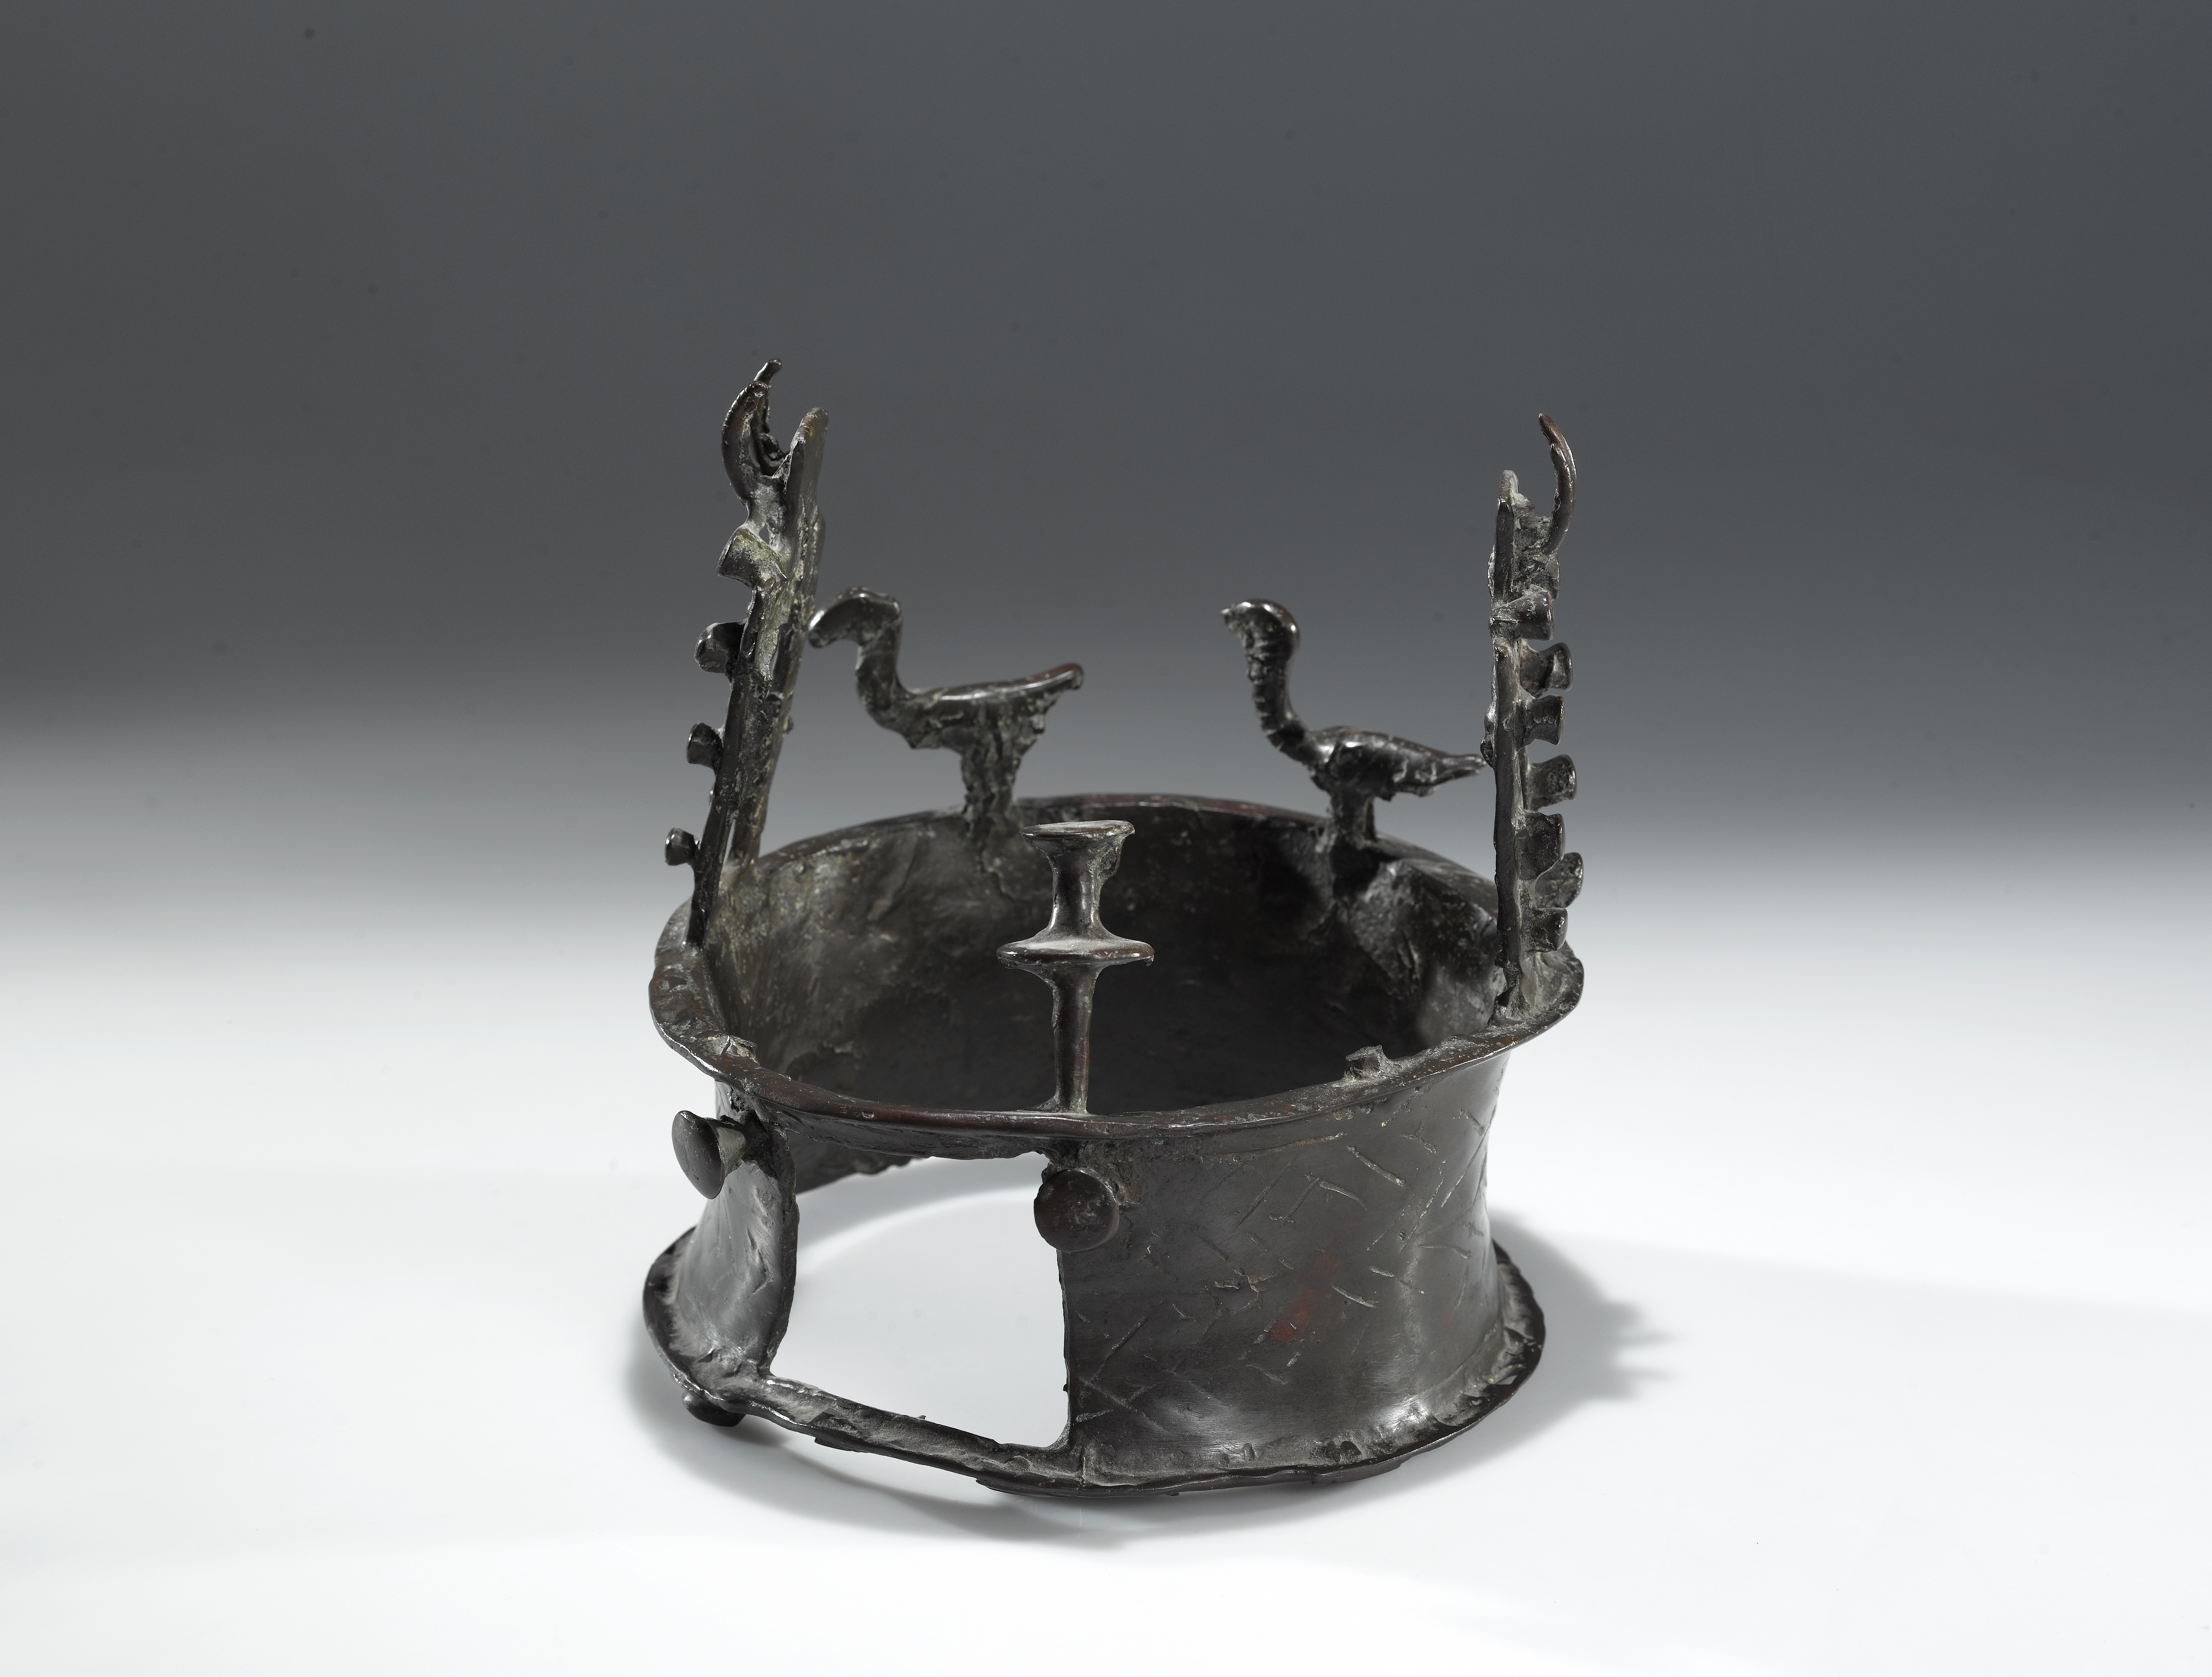 Copper crown with Building-Façade Decoration and Vultures, 4500–3600 BCE